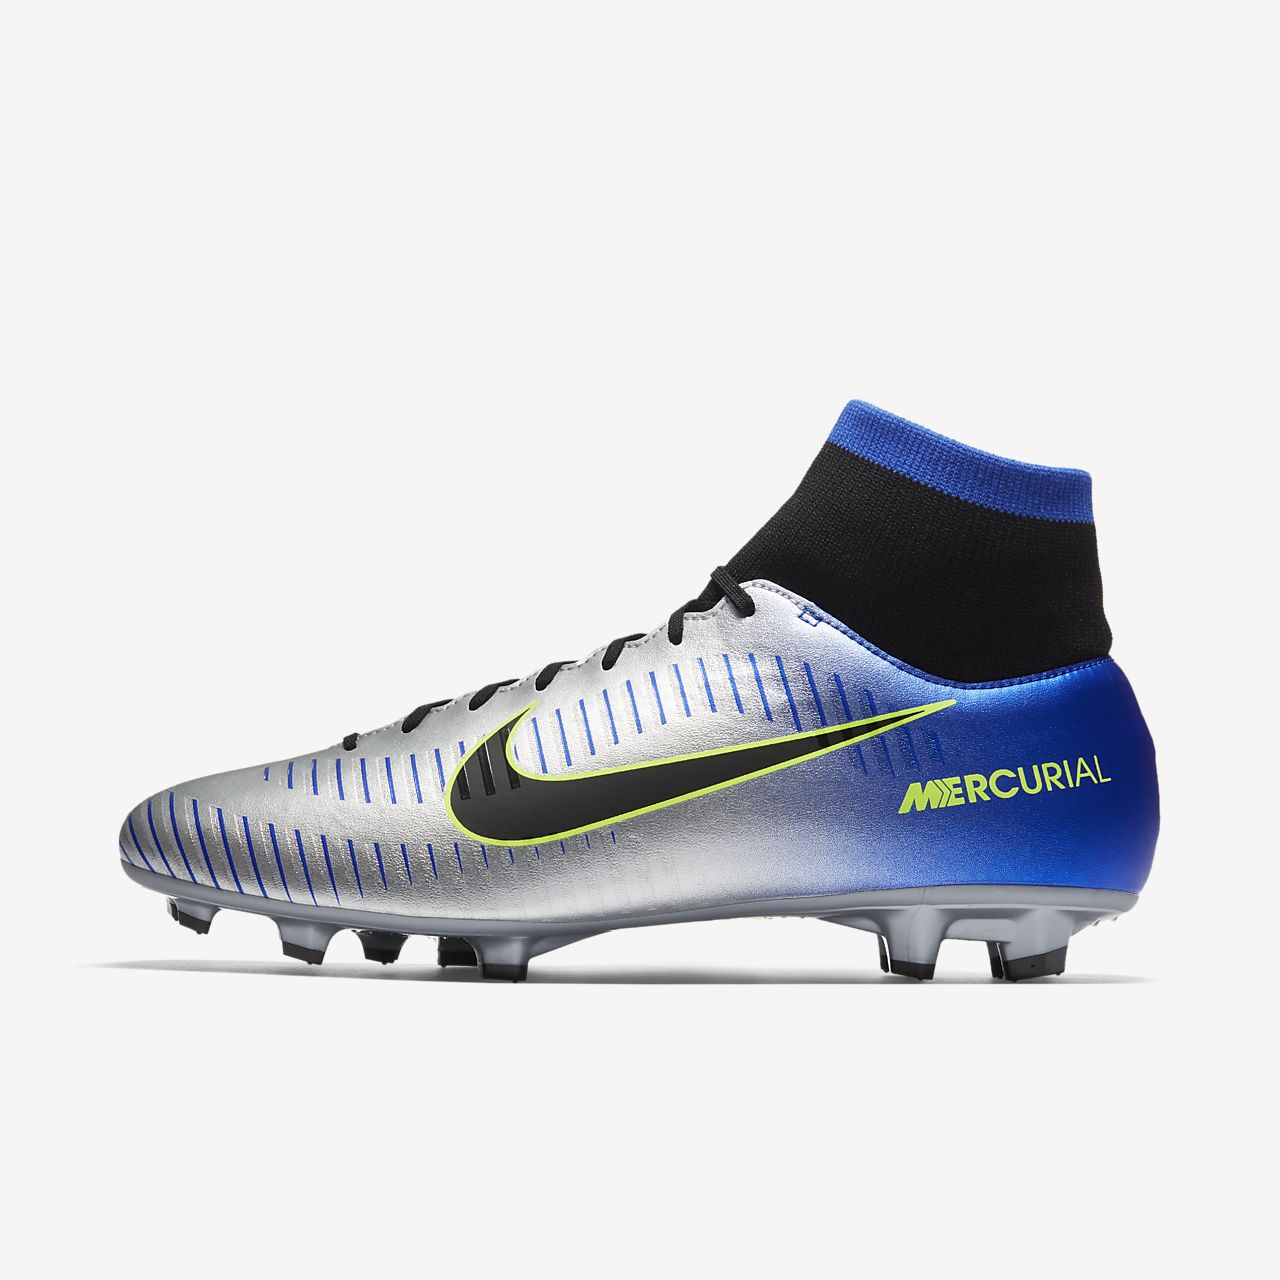 timeless design 58cee acce2 Nike Mercurial  Nike Sneakers Online at Best Prices  Backall